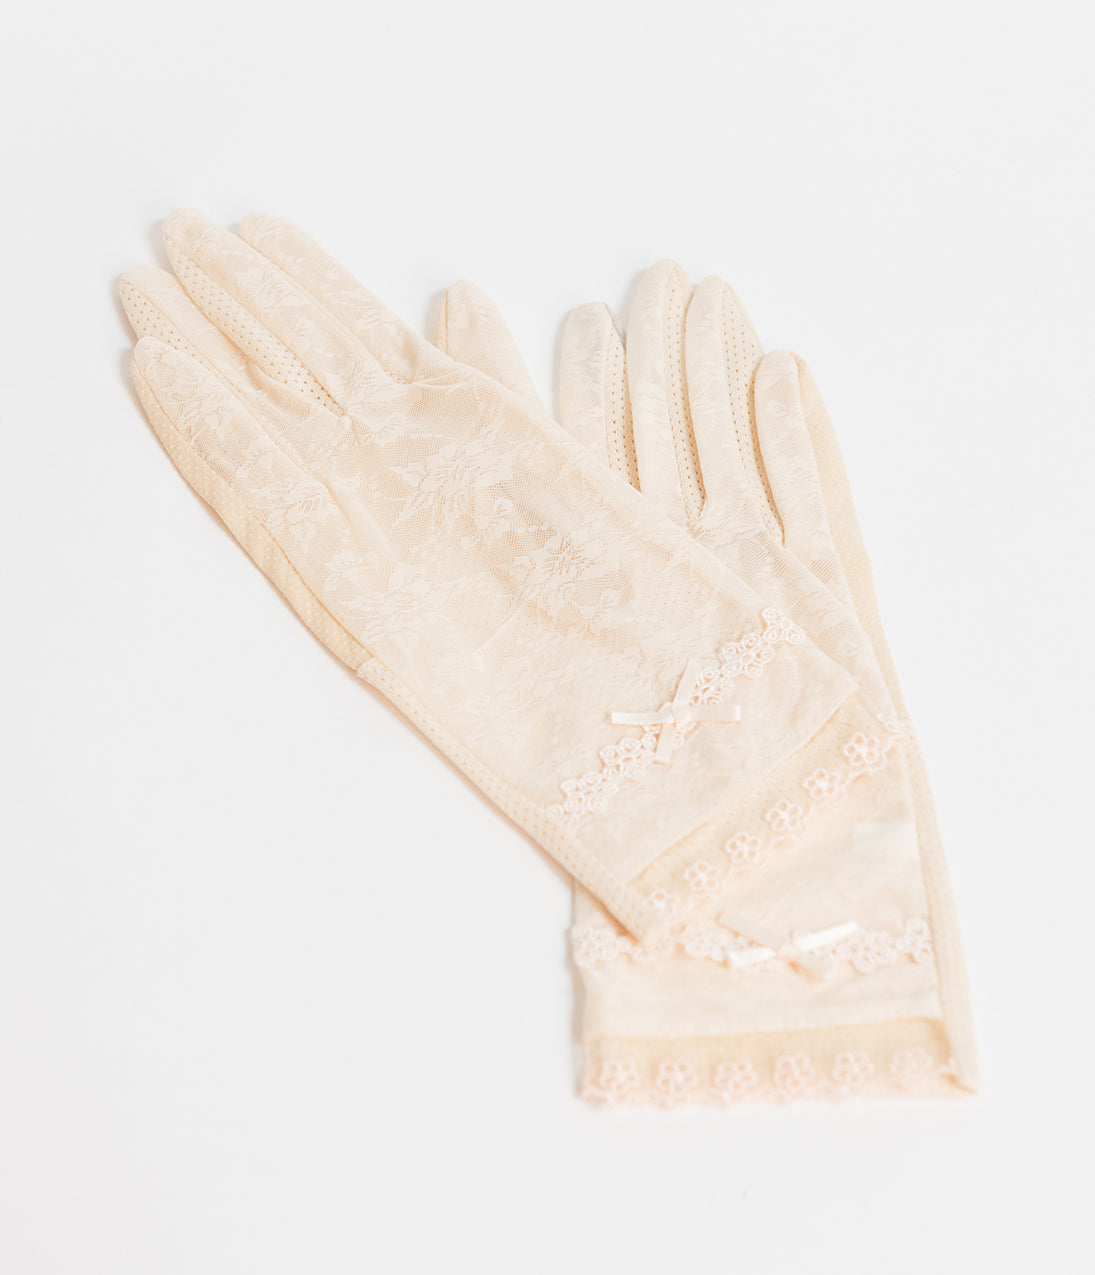 1950s Fashion History: Women's Clothing Unique Vintage Cream Mesh Lace Wrist Gloves $20.00 AT vintagedancer.com